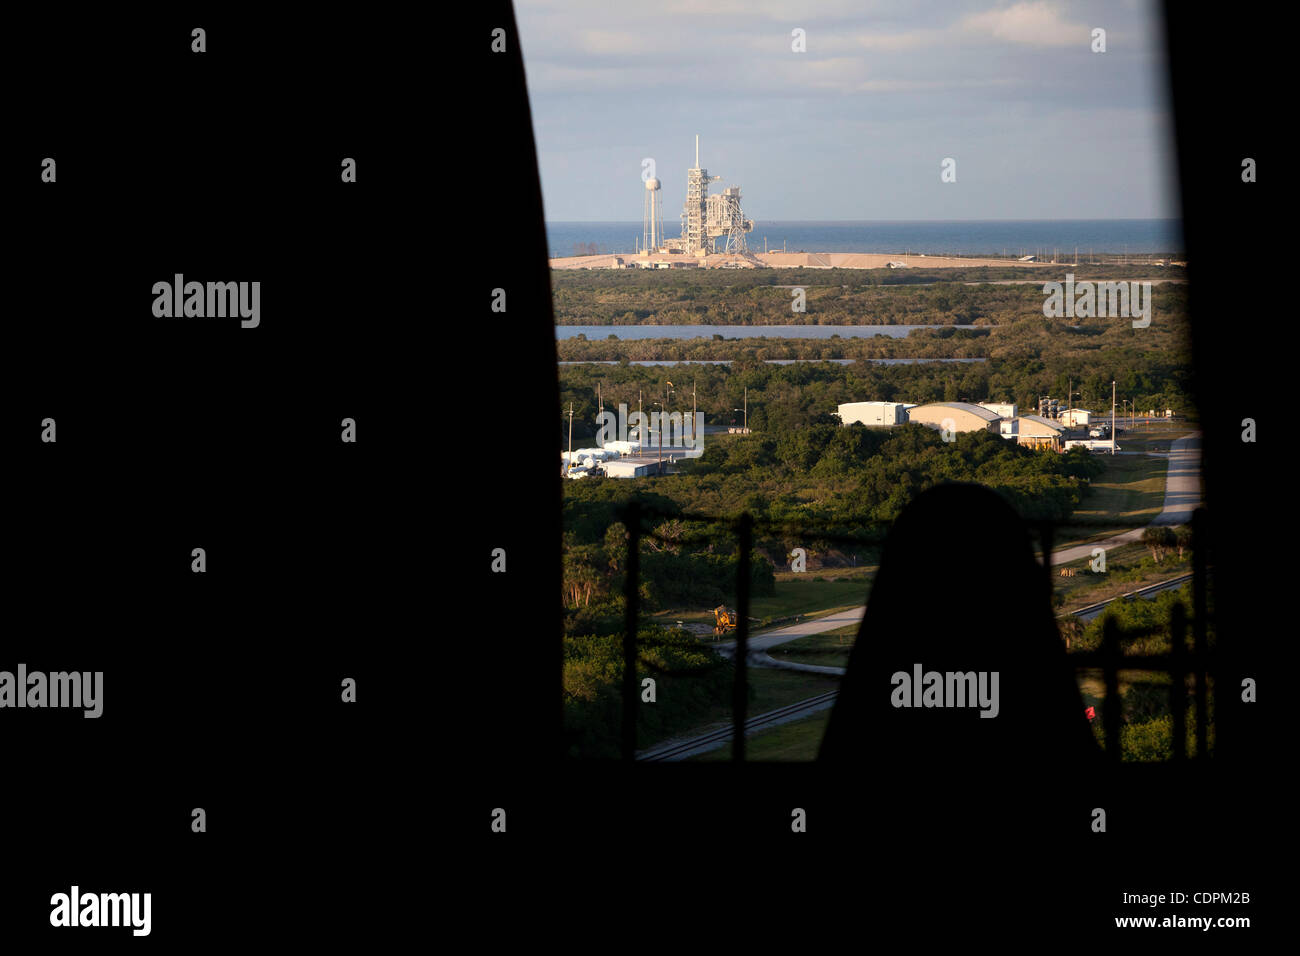 Cape Canaveral, Florida US - Pad 39A is visible through the open doors of the Vehicle Assembly Buidling on Tuesday, - Stock Image